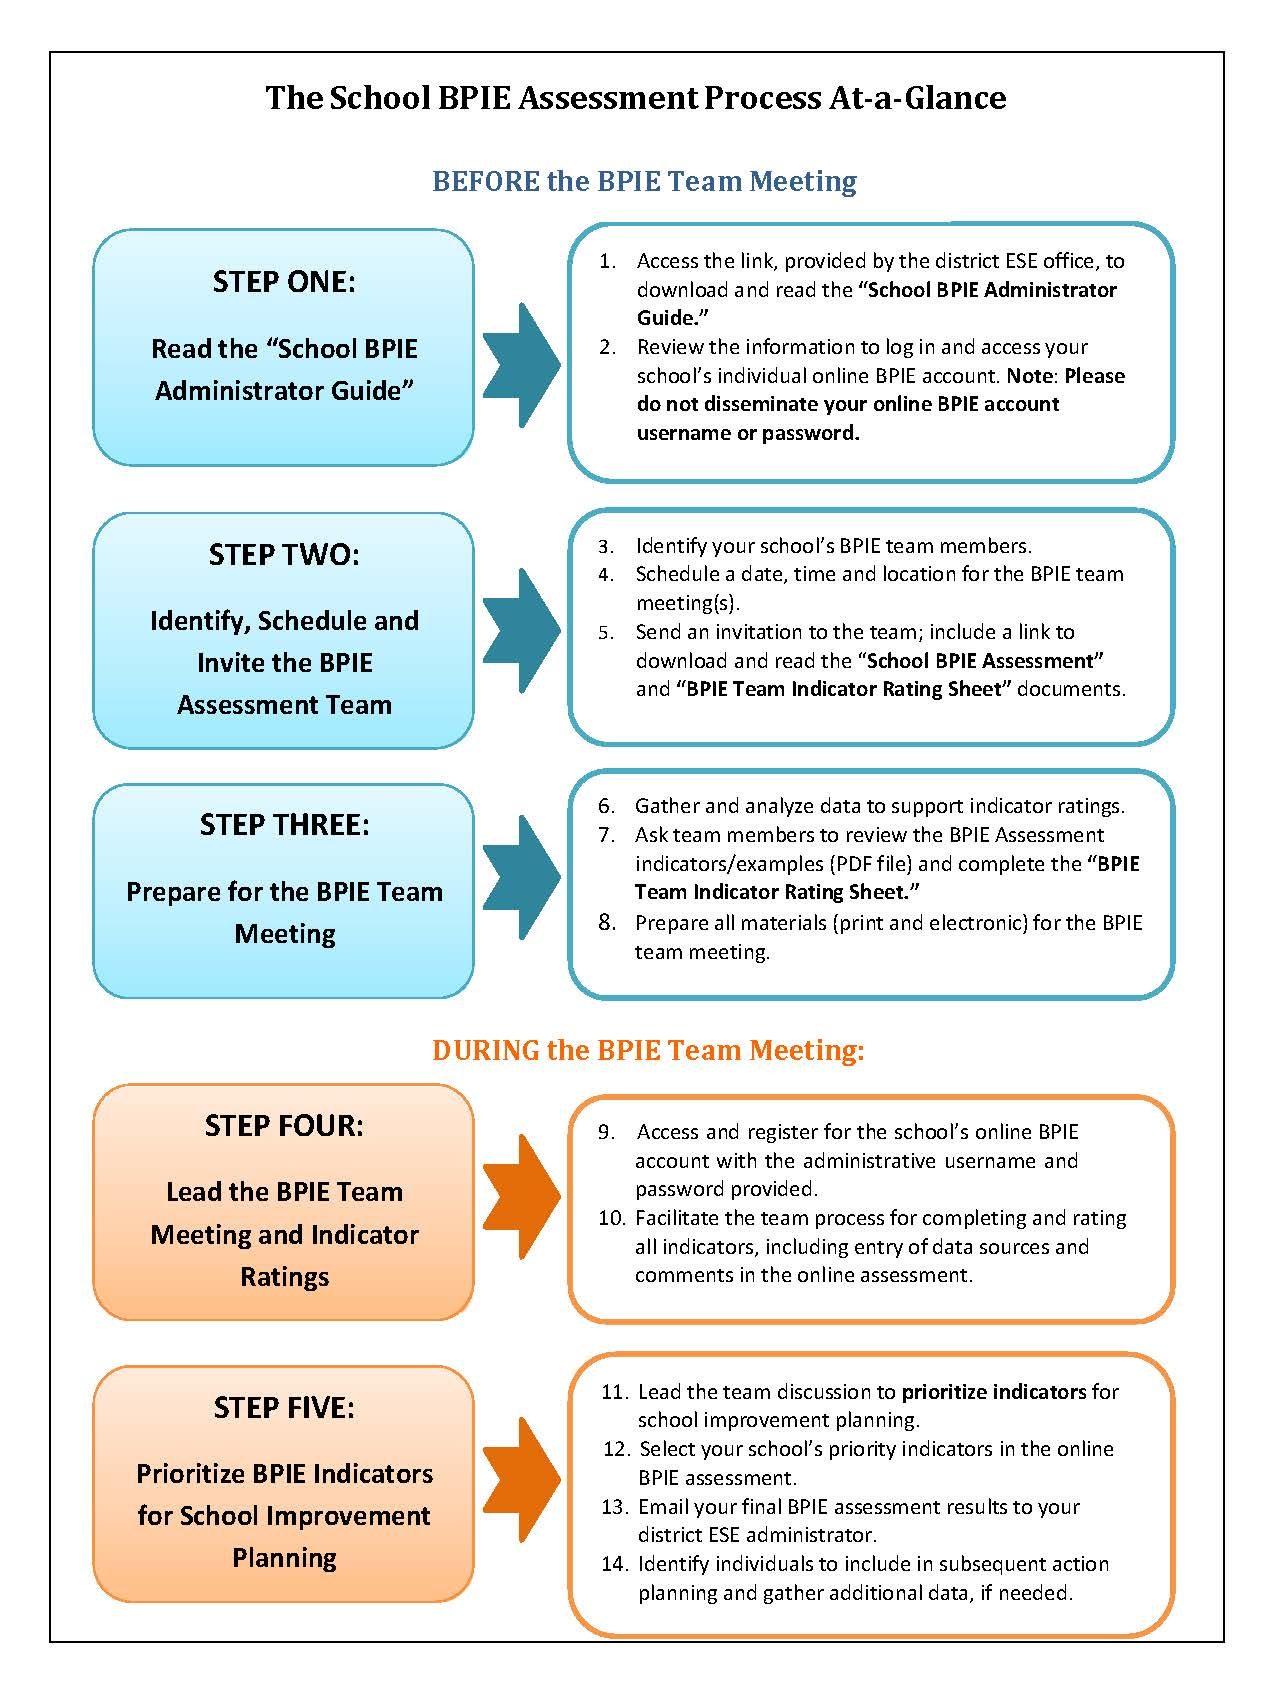 The School BPIE Assessment Process At-a-Glance11-17-14